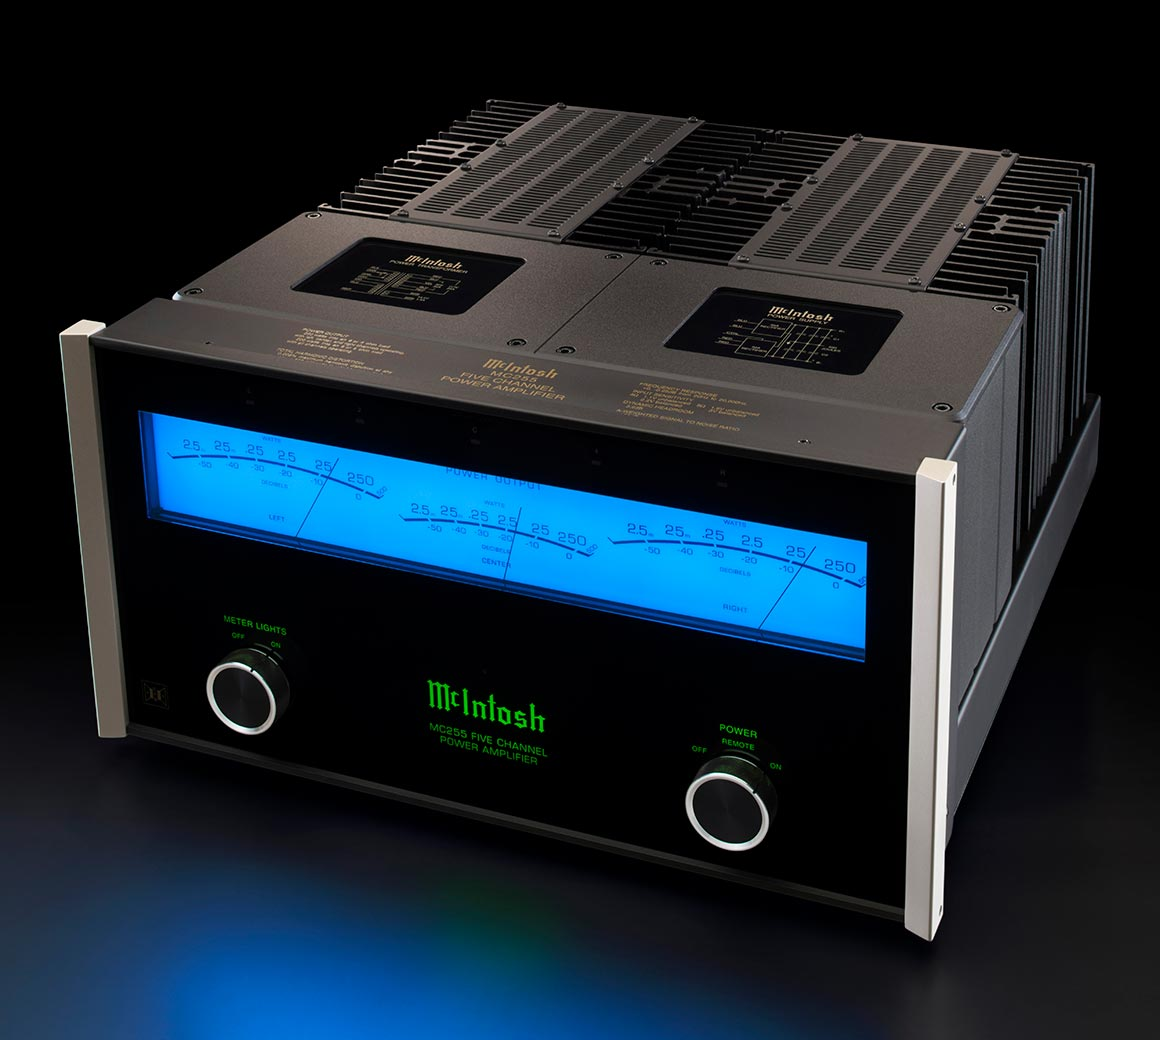 McIntosh MC255 5-Channel Solid State Amplifier from Basil Audio